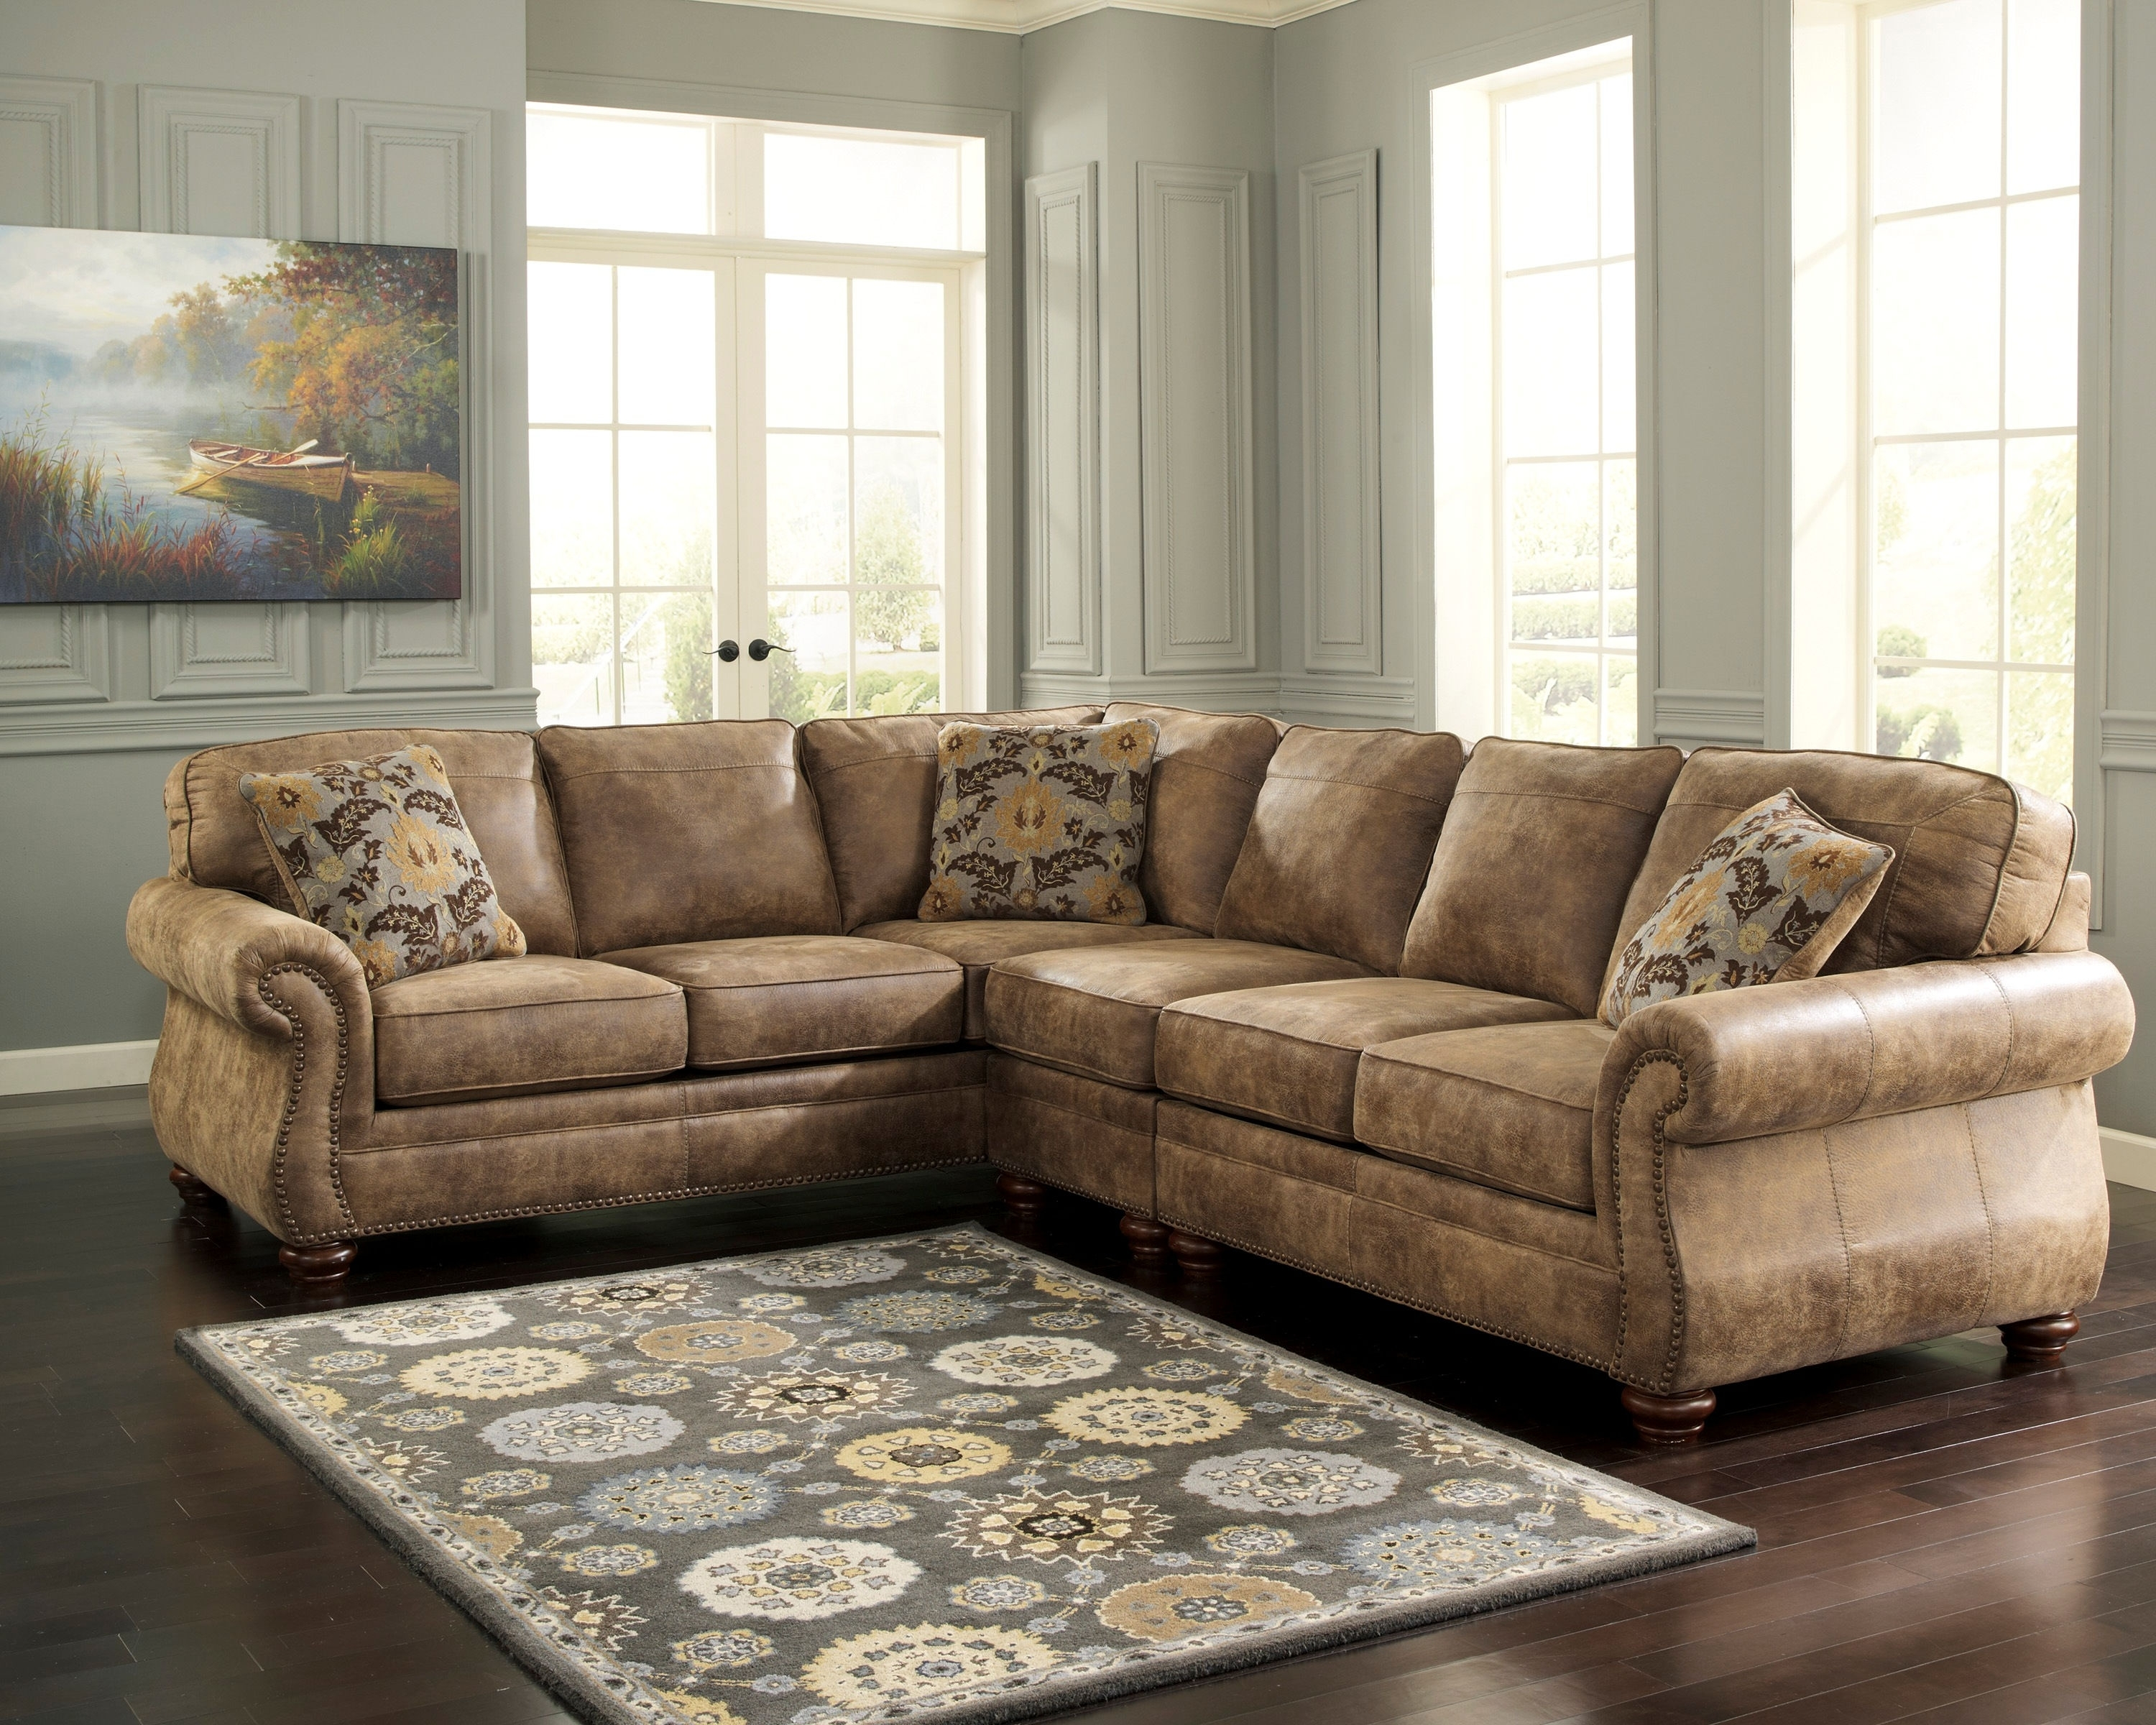 Laf Sofa Raf Loveseat   Baci Living Room With Regard To Turdur 3 Piece Sectionals With Laf Loveseat (Image 11 of 25)